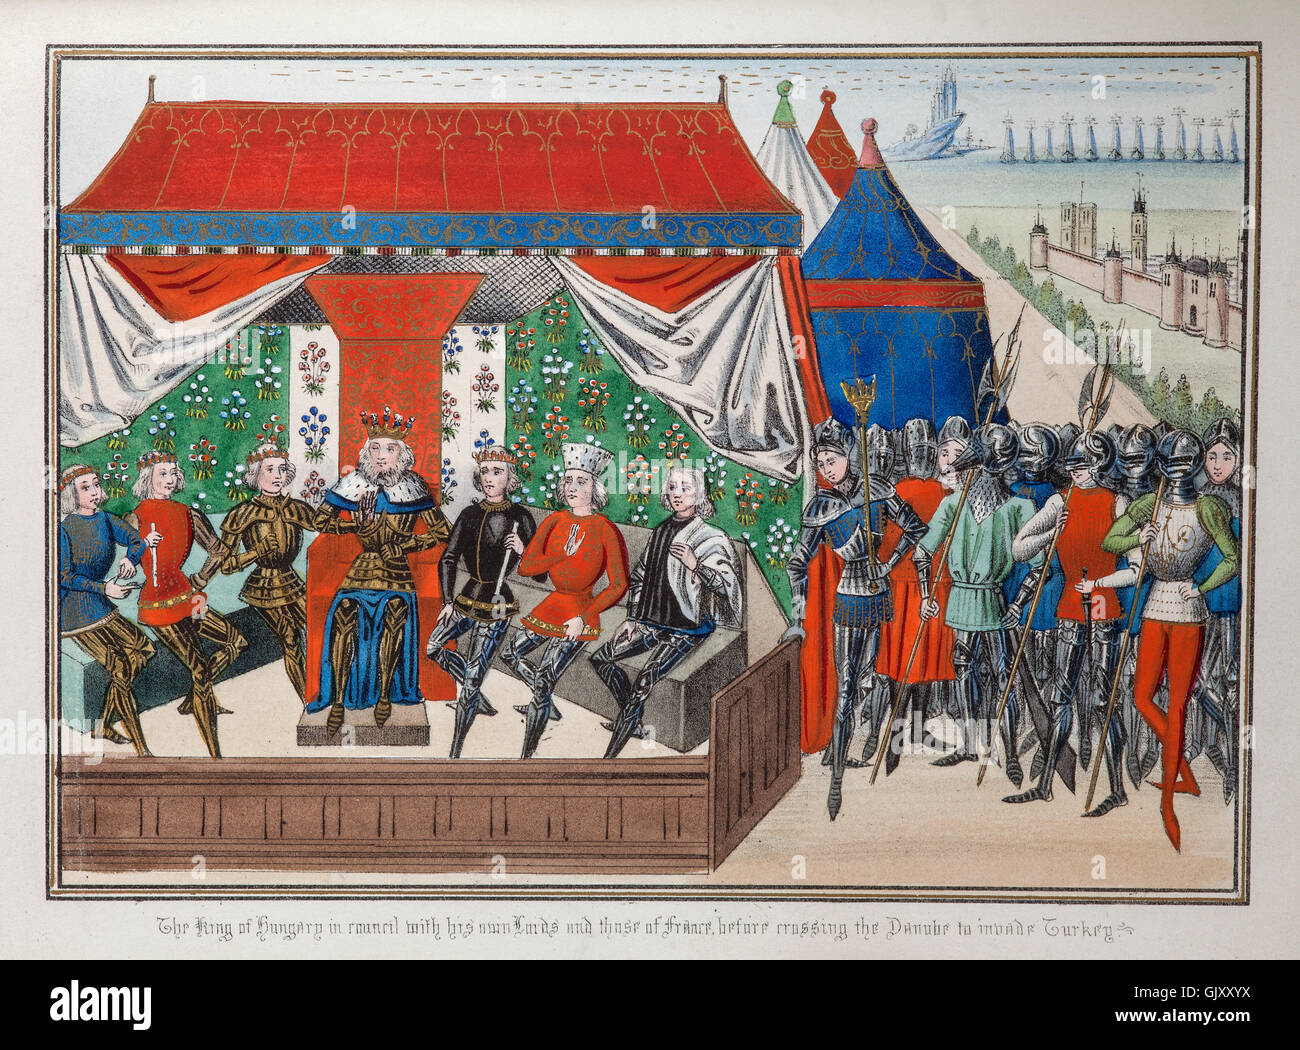 Sigismond, King of Hungary in council with French knights after perceived threats from Sultan Bajezet in 1396. - Stock Image